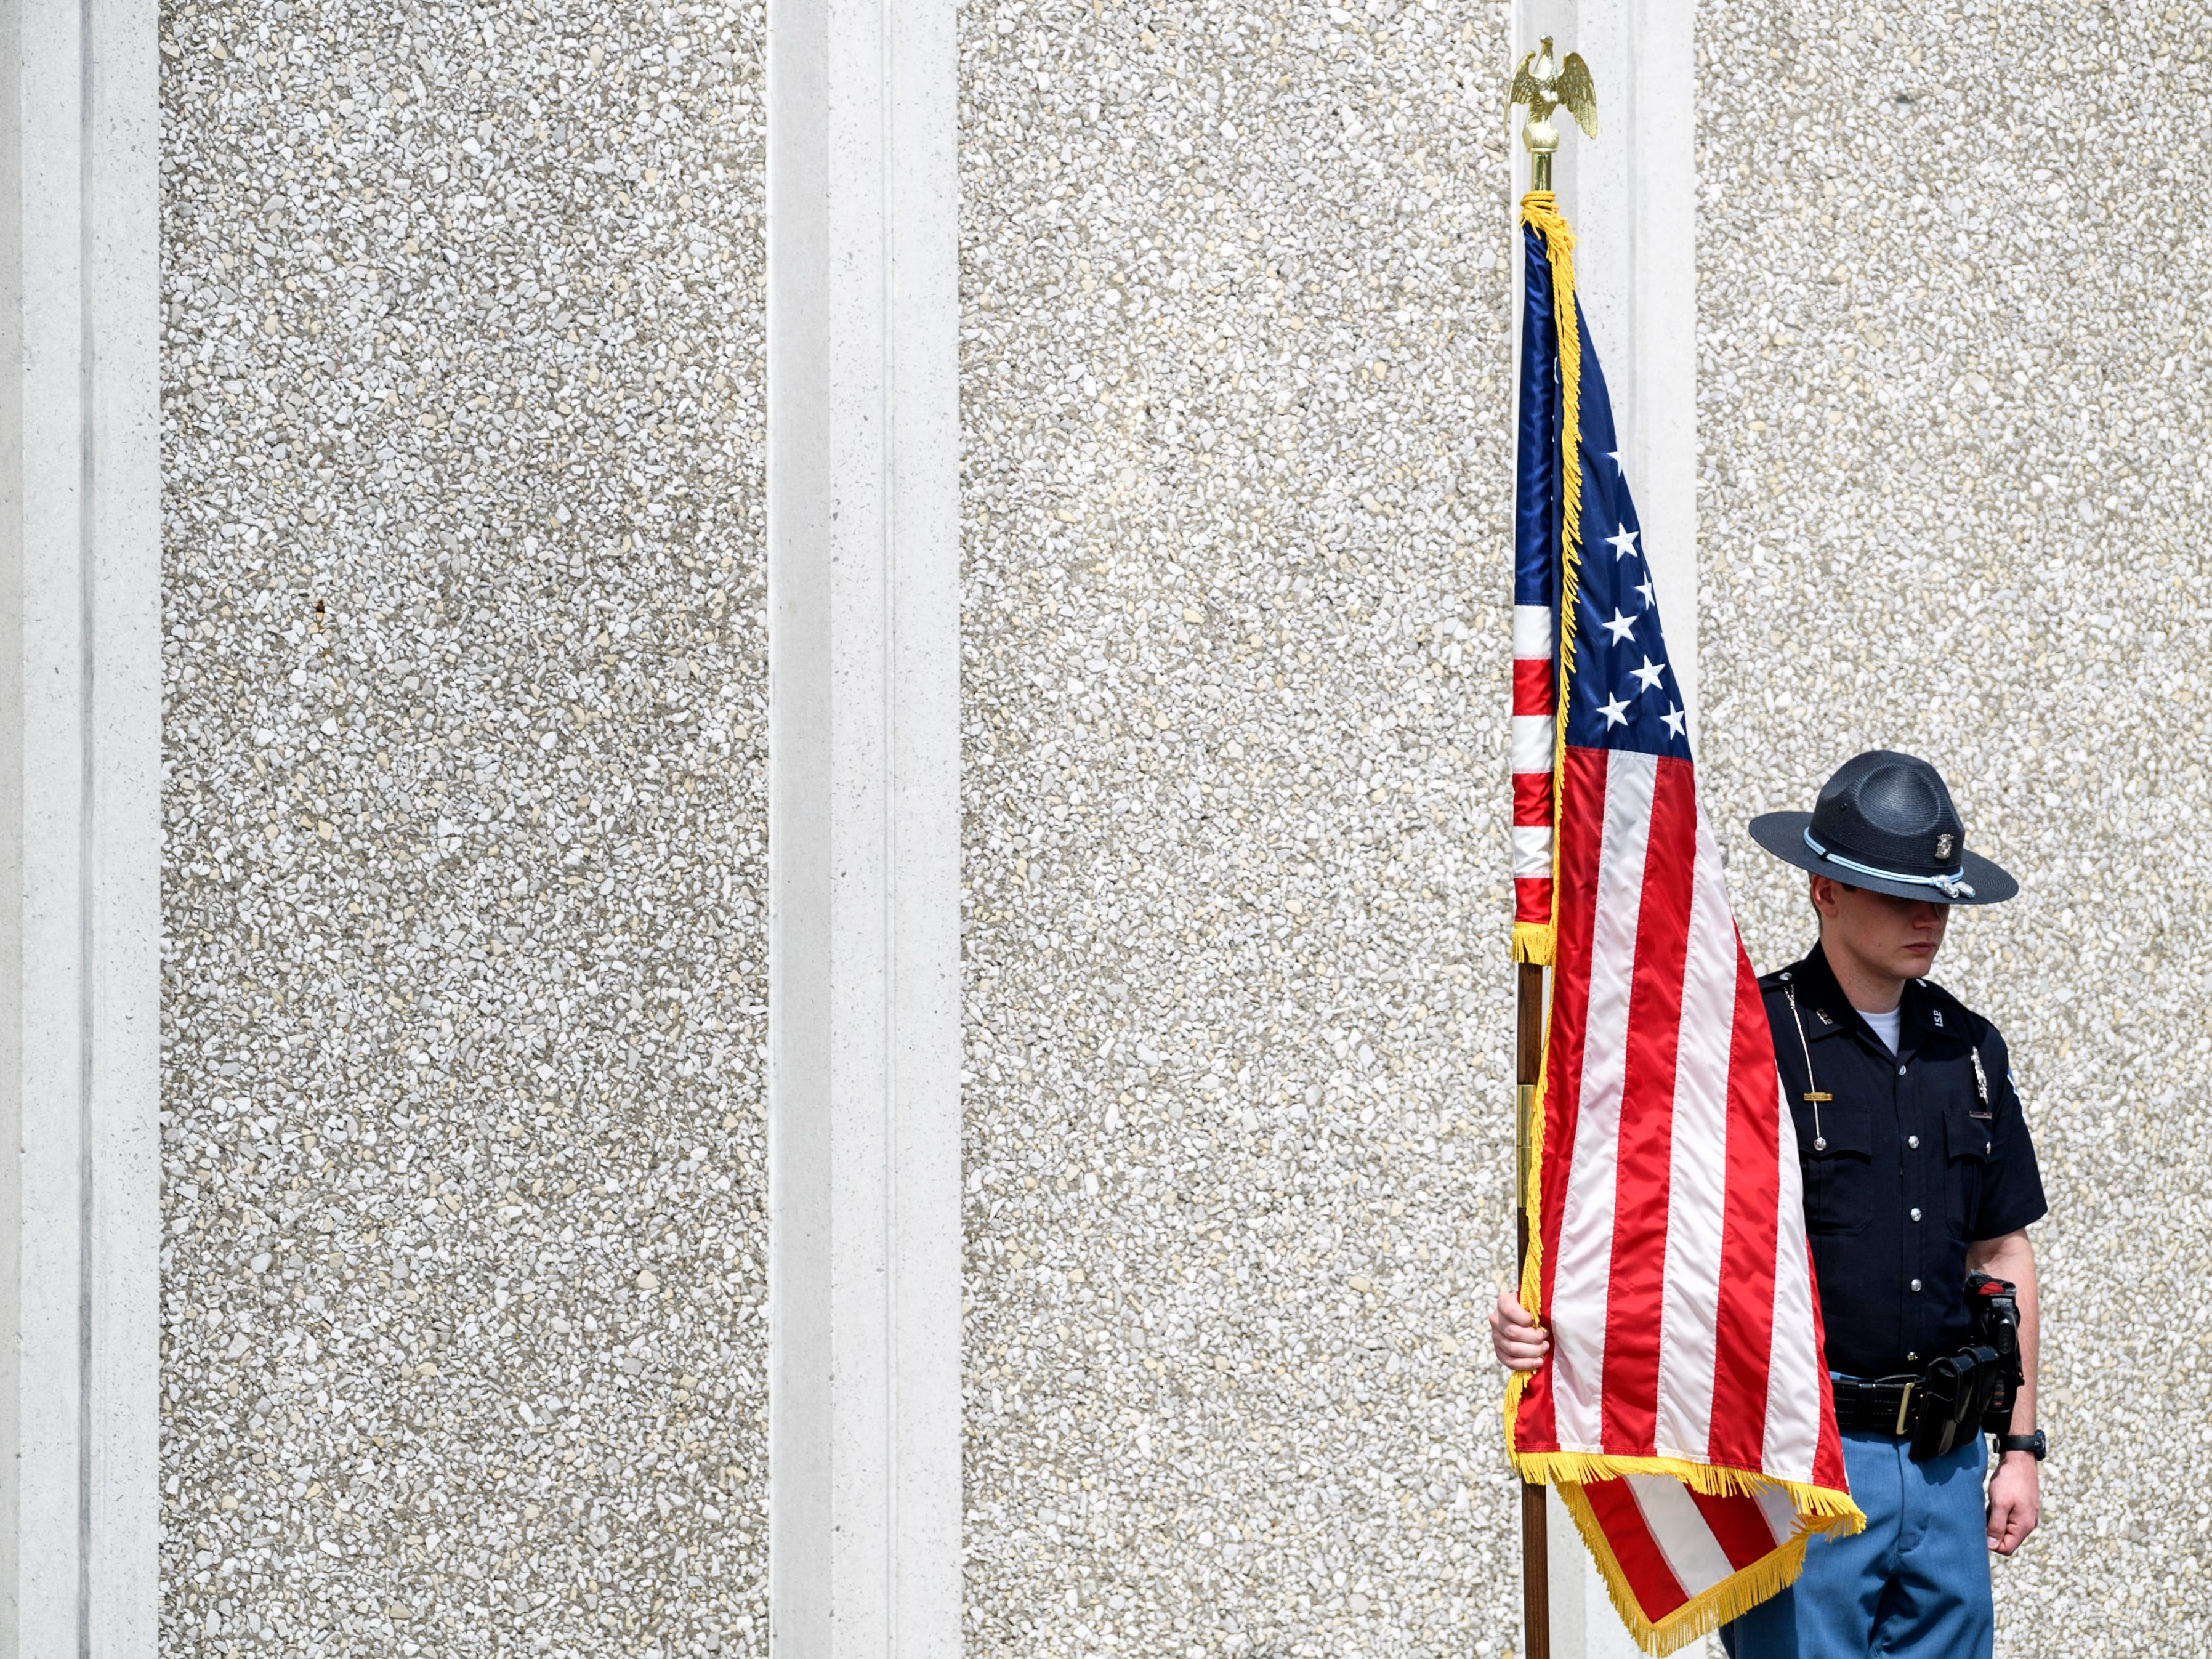 Trooper Daltyn Backes holds an American flag as all the names of Indiana State troopers who have died in the line of duty over the years are read aloud during the annual State Police Memorial Service held outside of the Police Post in Evansville, Ind., Wednesday morning, May 8, 2019. A total of 46 members of the ISP have died in the line of duty since the department's inception in 1933, with the most recent being Master Motor Carrier Inspector Robert E. Pitcher of Cambridge City, Ind., in September 2010.